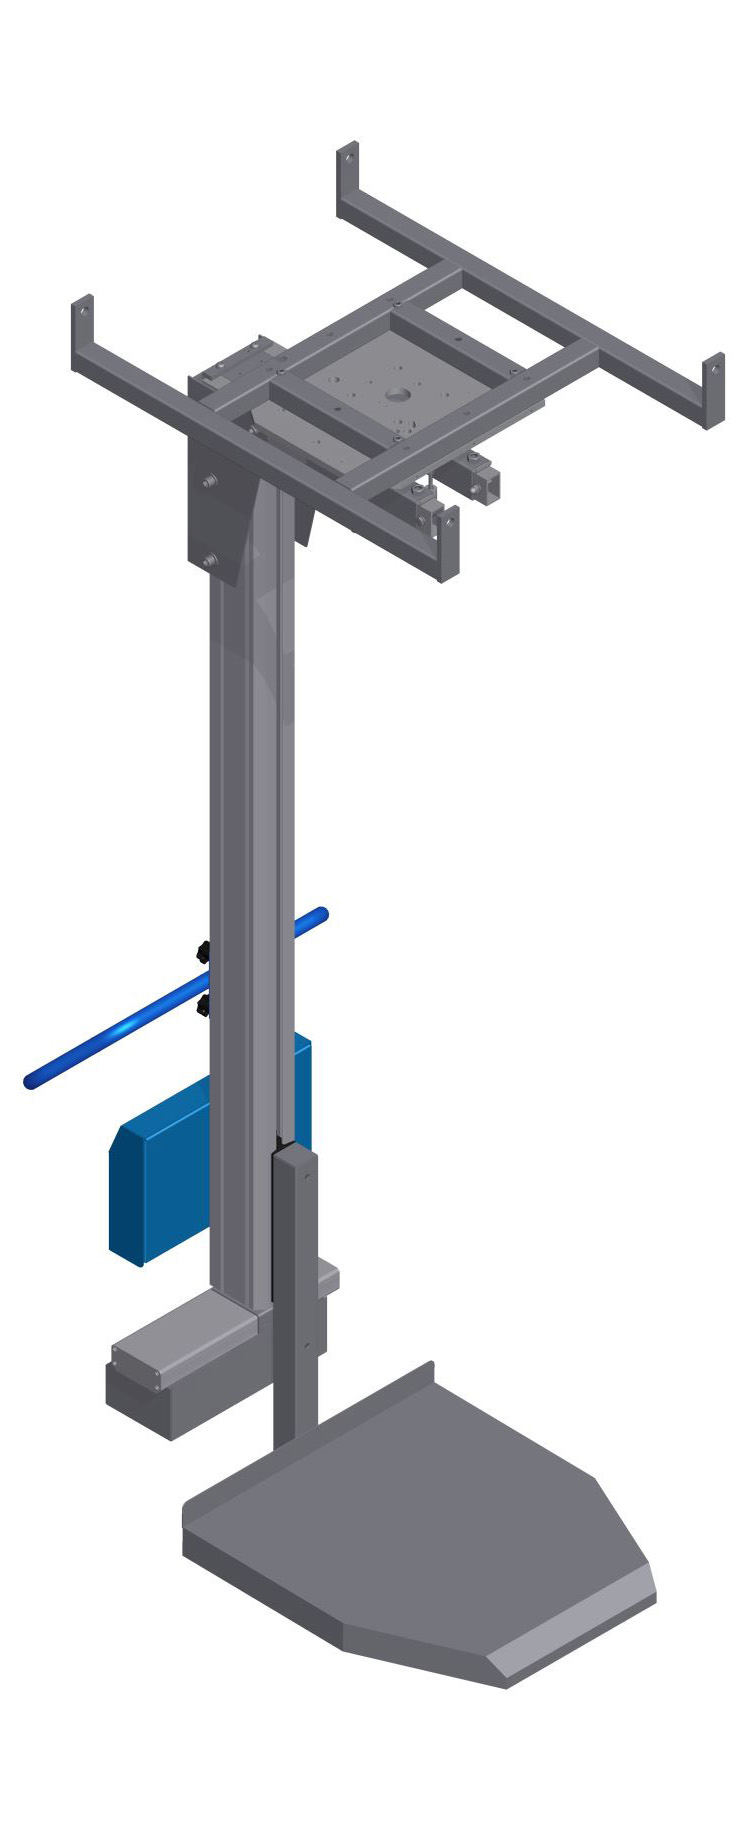 Roof-mounted overhead lifter – Lift&Fly